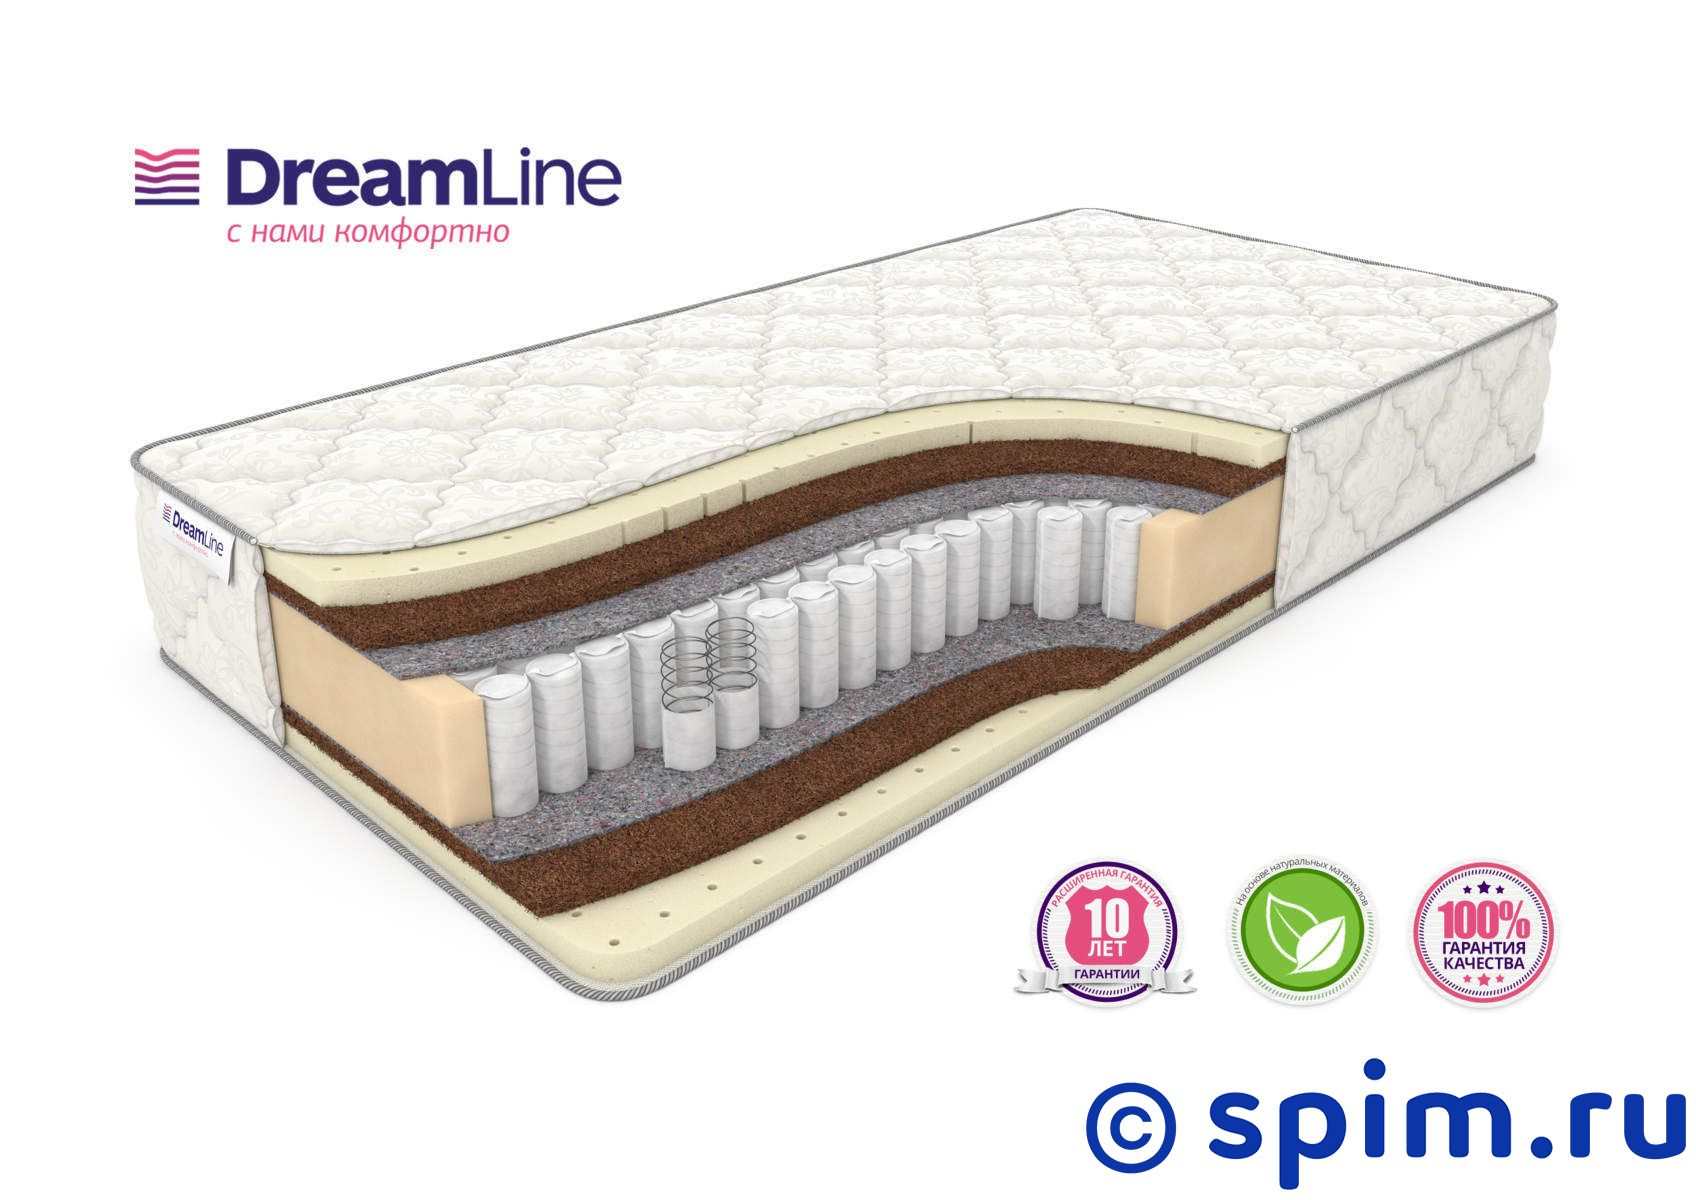 Матрас DreamLine Prime Medium Tfk 140х195 см матрас dreamline sleepdream medium tfk 140х200 см